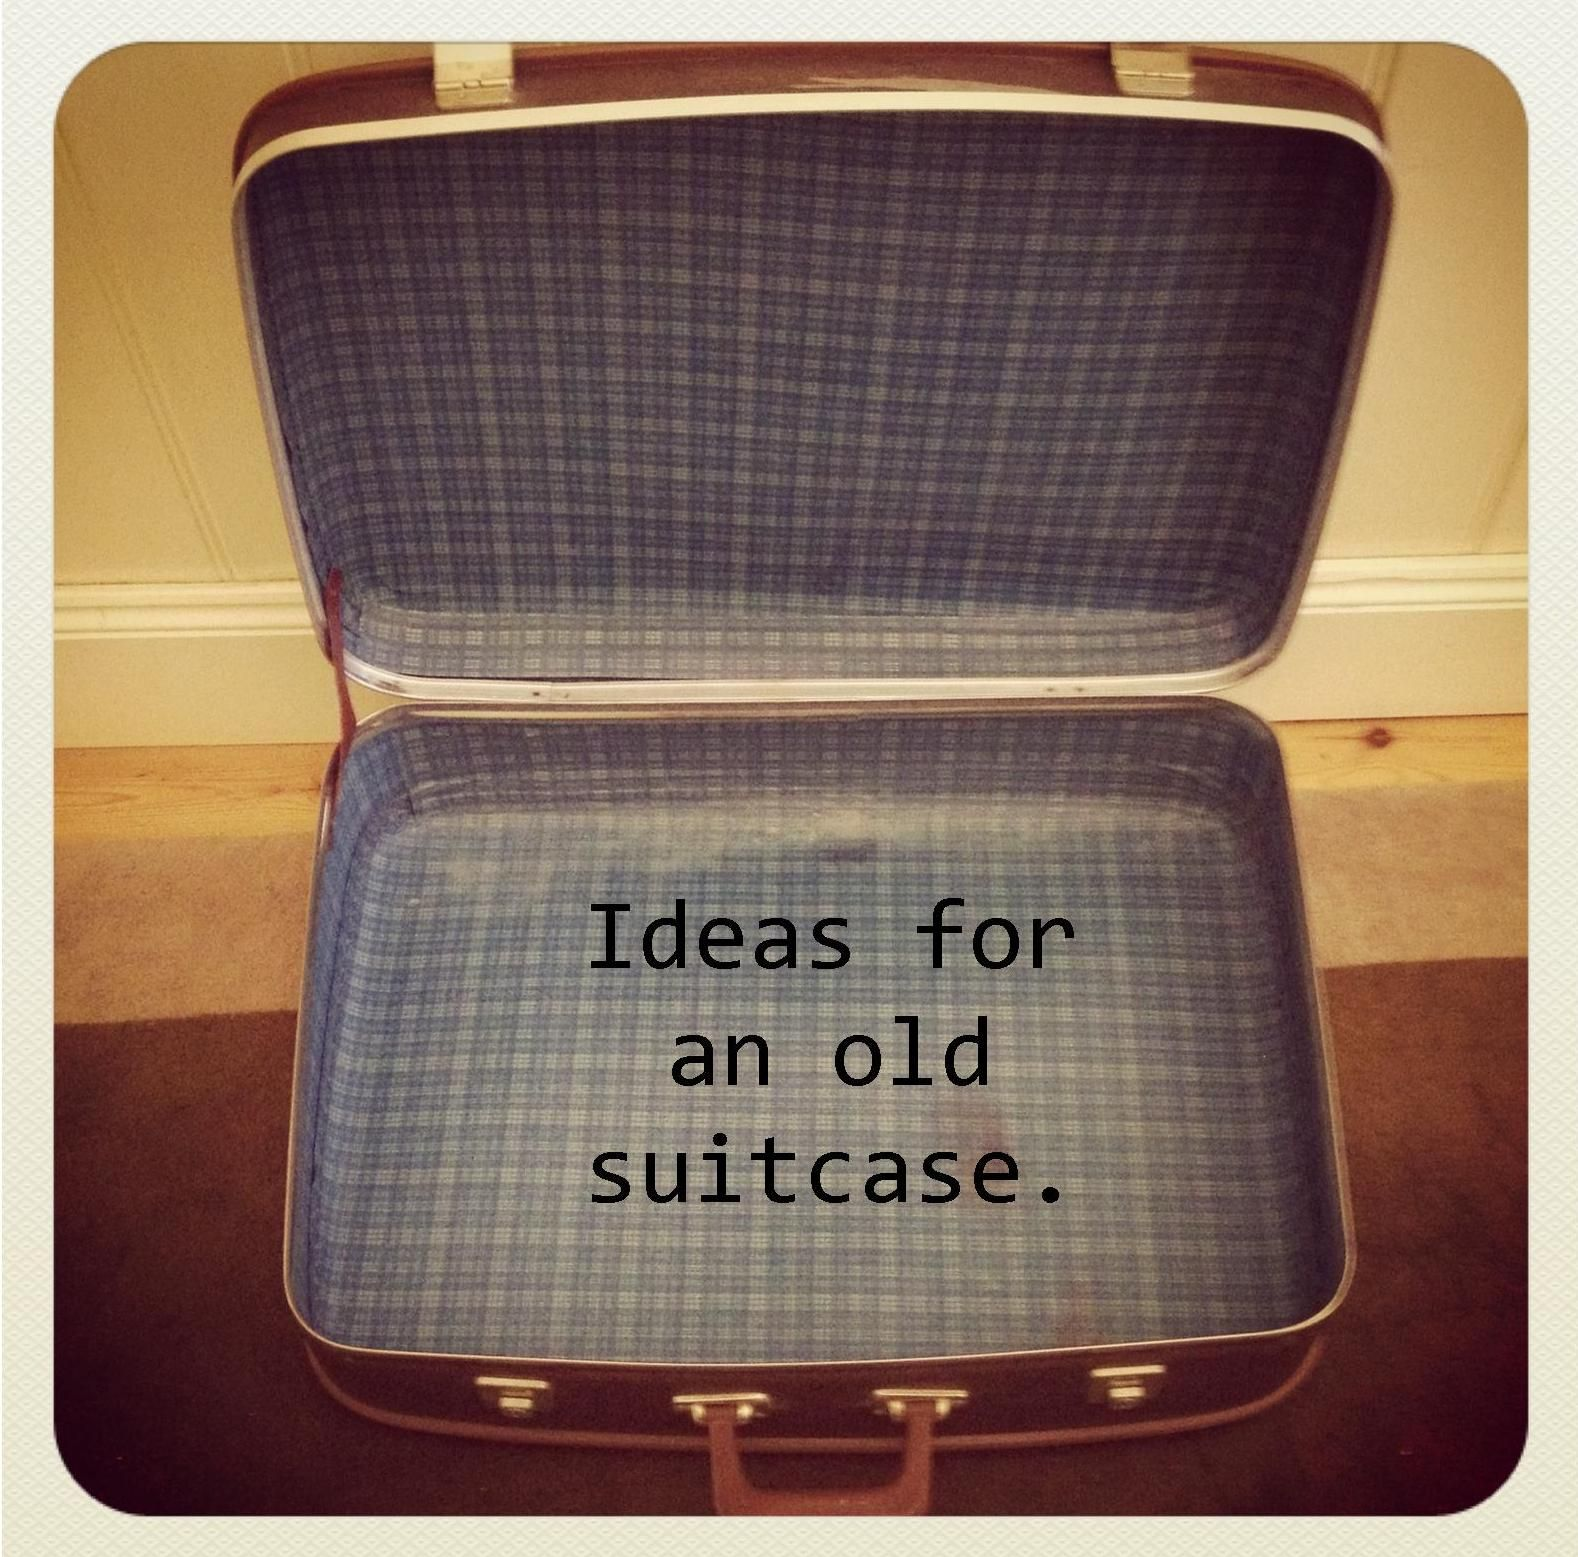 ideas for old suitcase vintage luggage old suitcase old